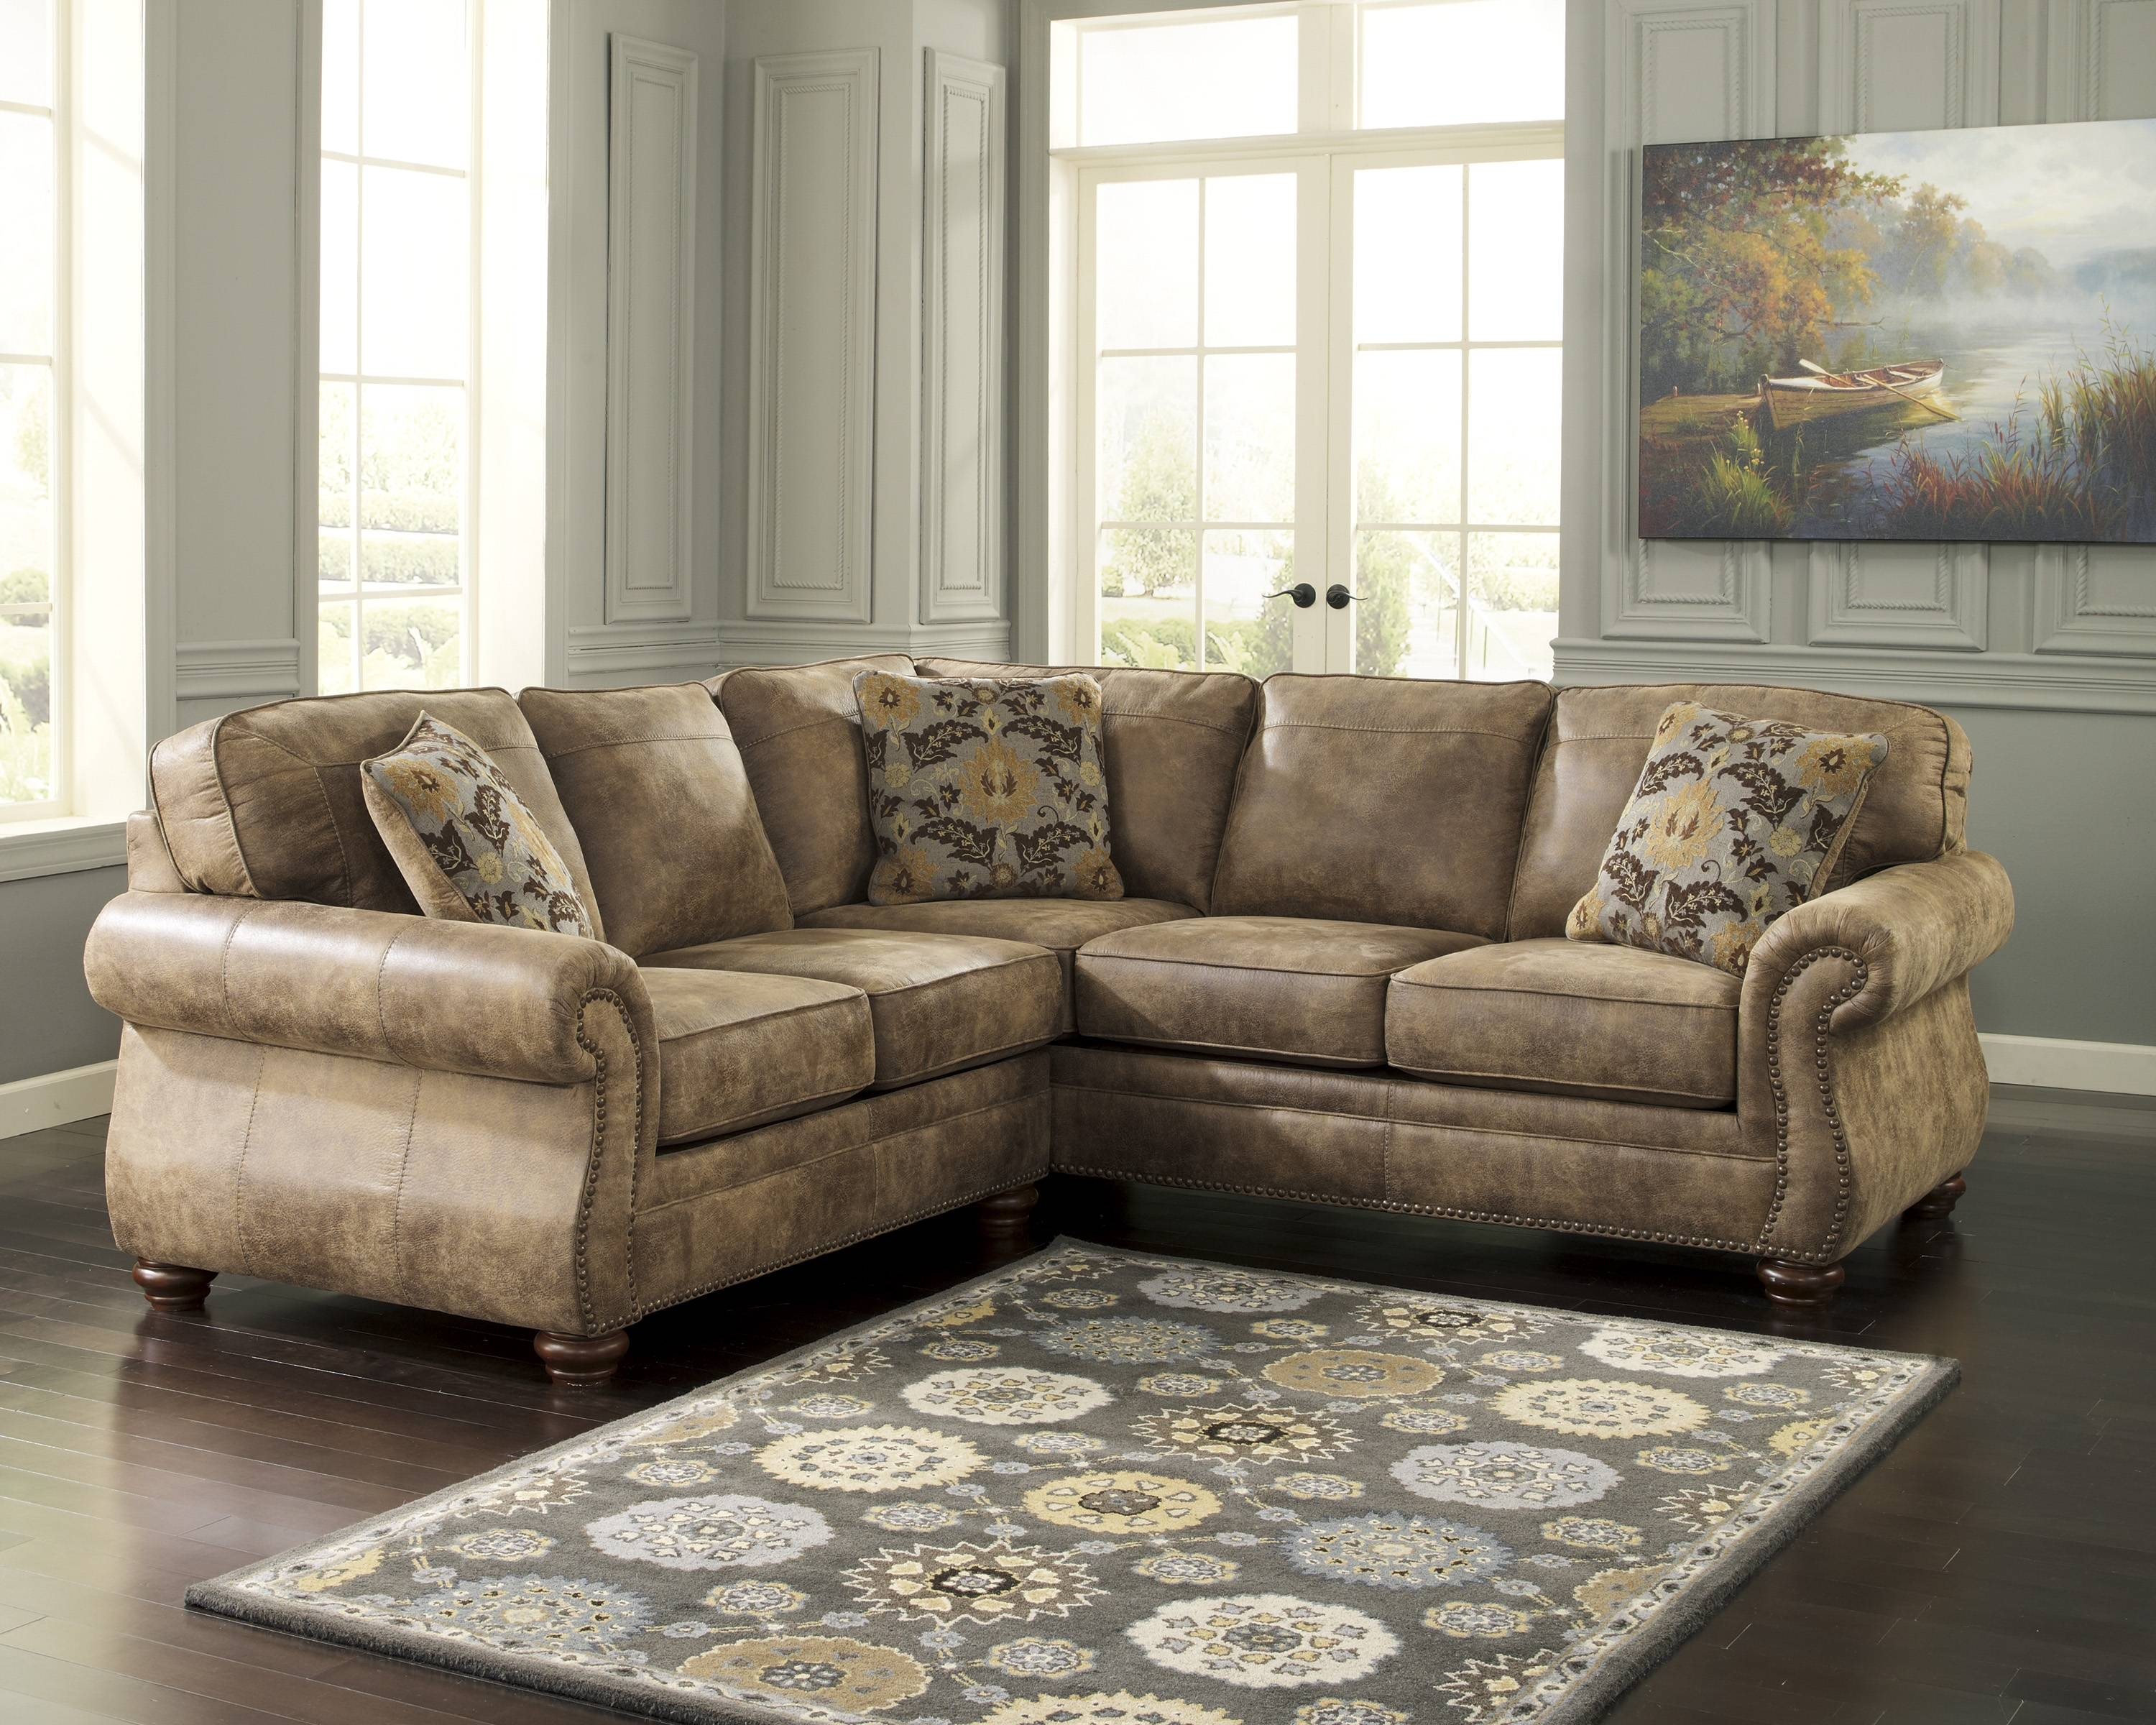 Ashley Furniture Fabric Sectionals, Ashley Furniture Sofa Sleepers with regard to Classic Sectional Sofas (Image 4 of 30)